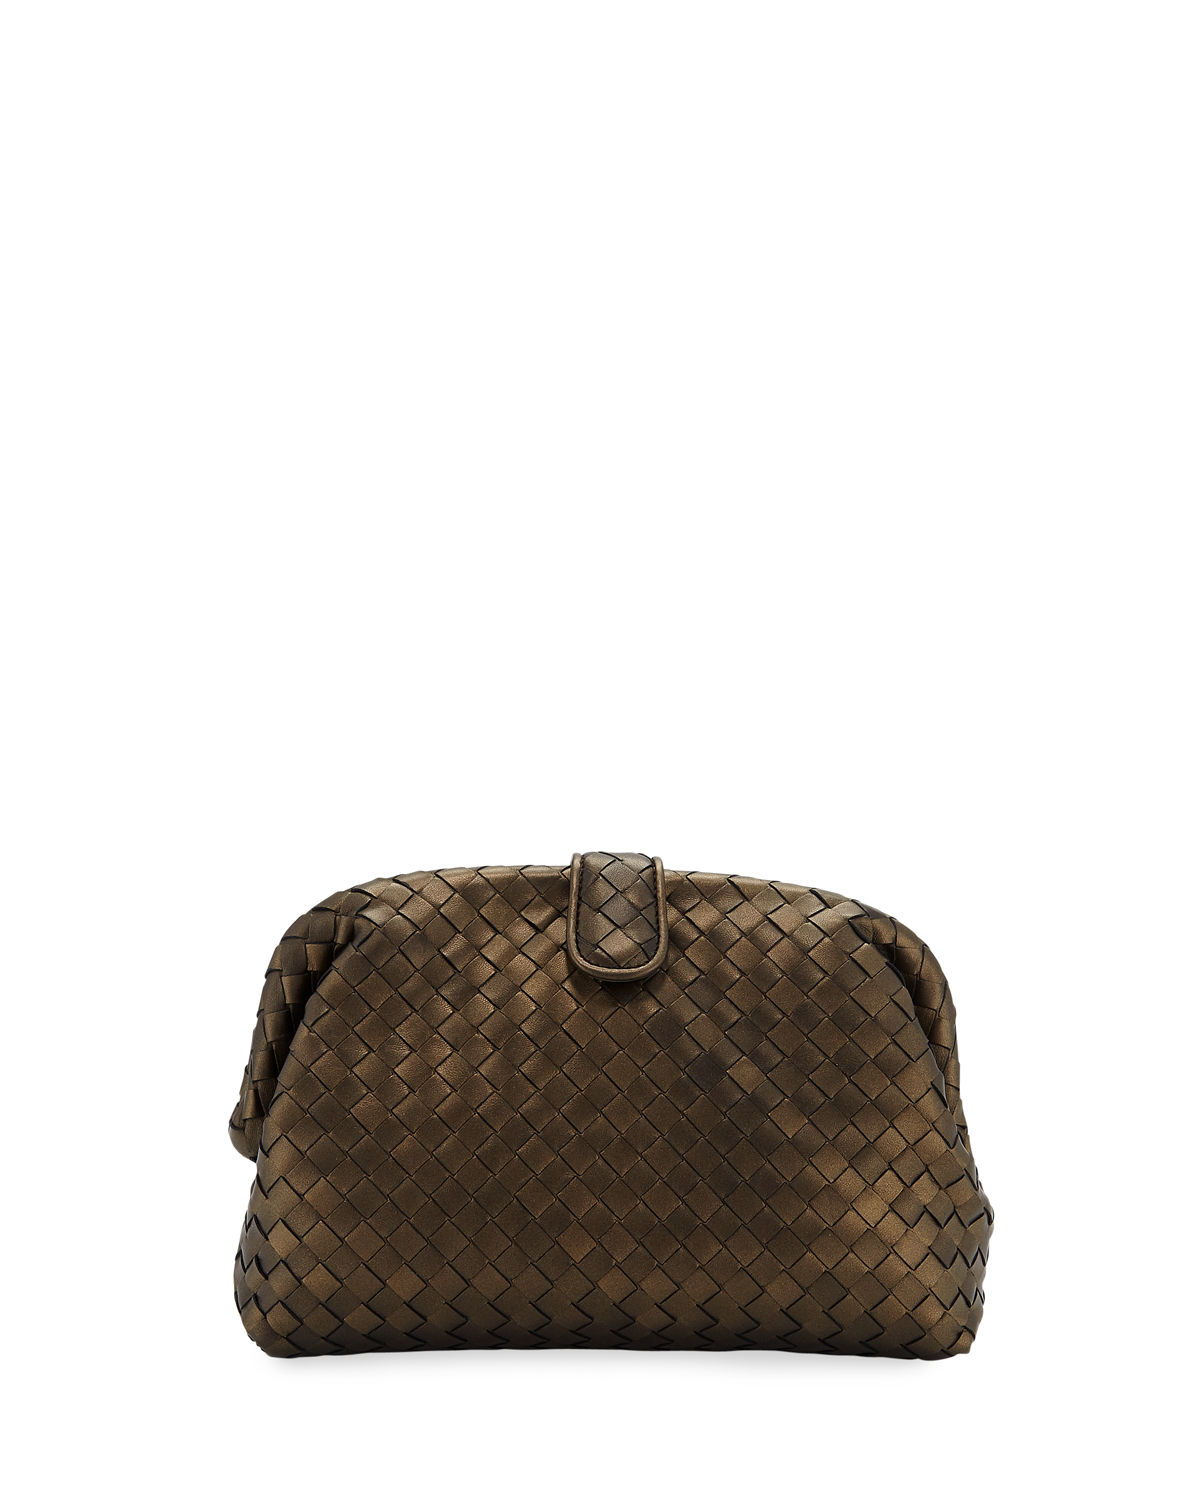 016cbcff39 Bottega Veneta The Lauren 1980 Napa Leather Clutch Bag